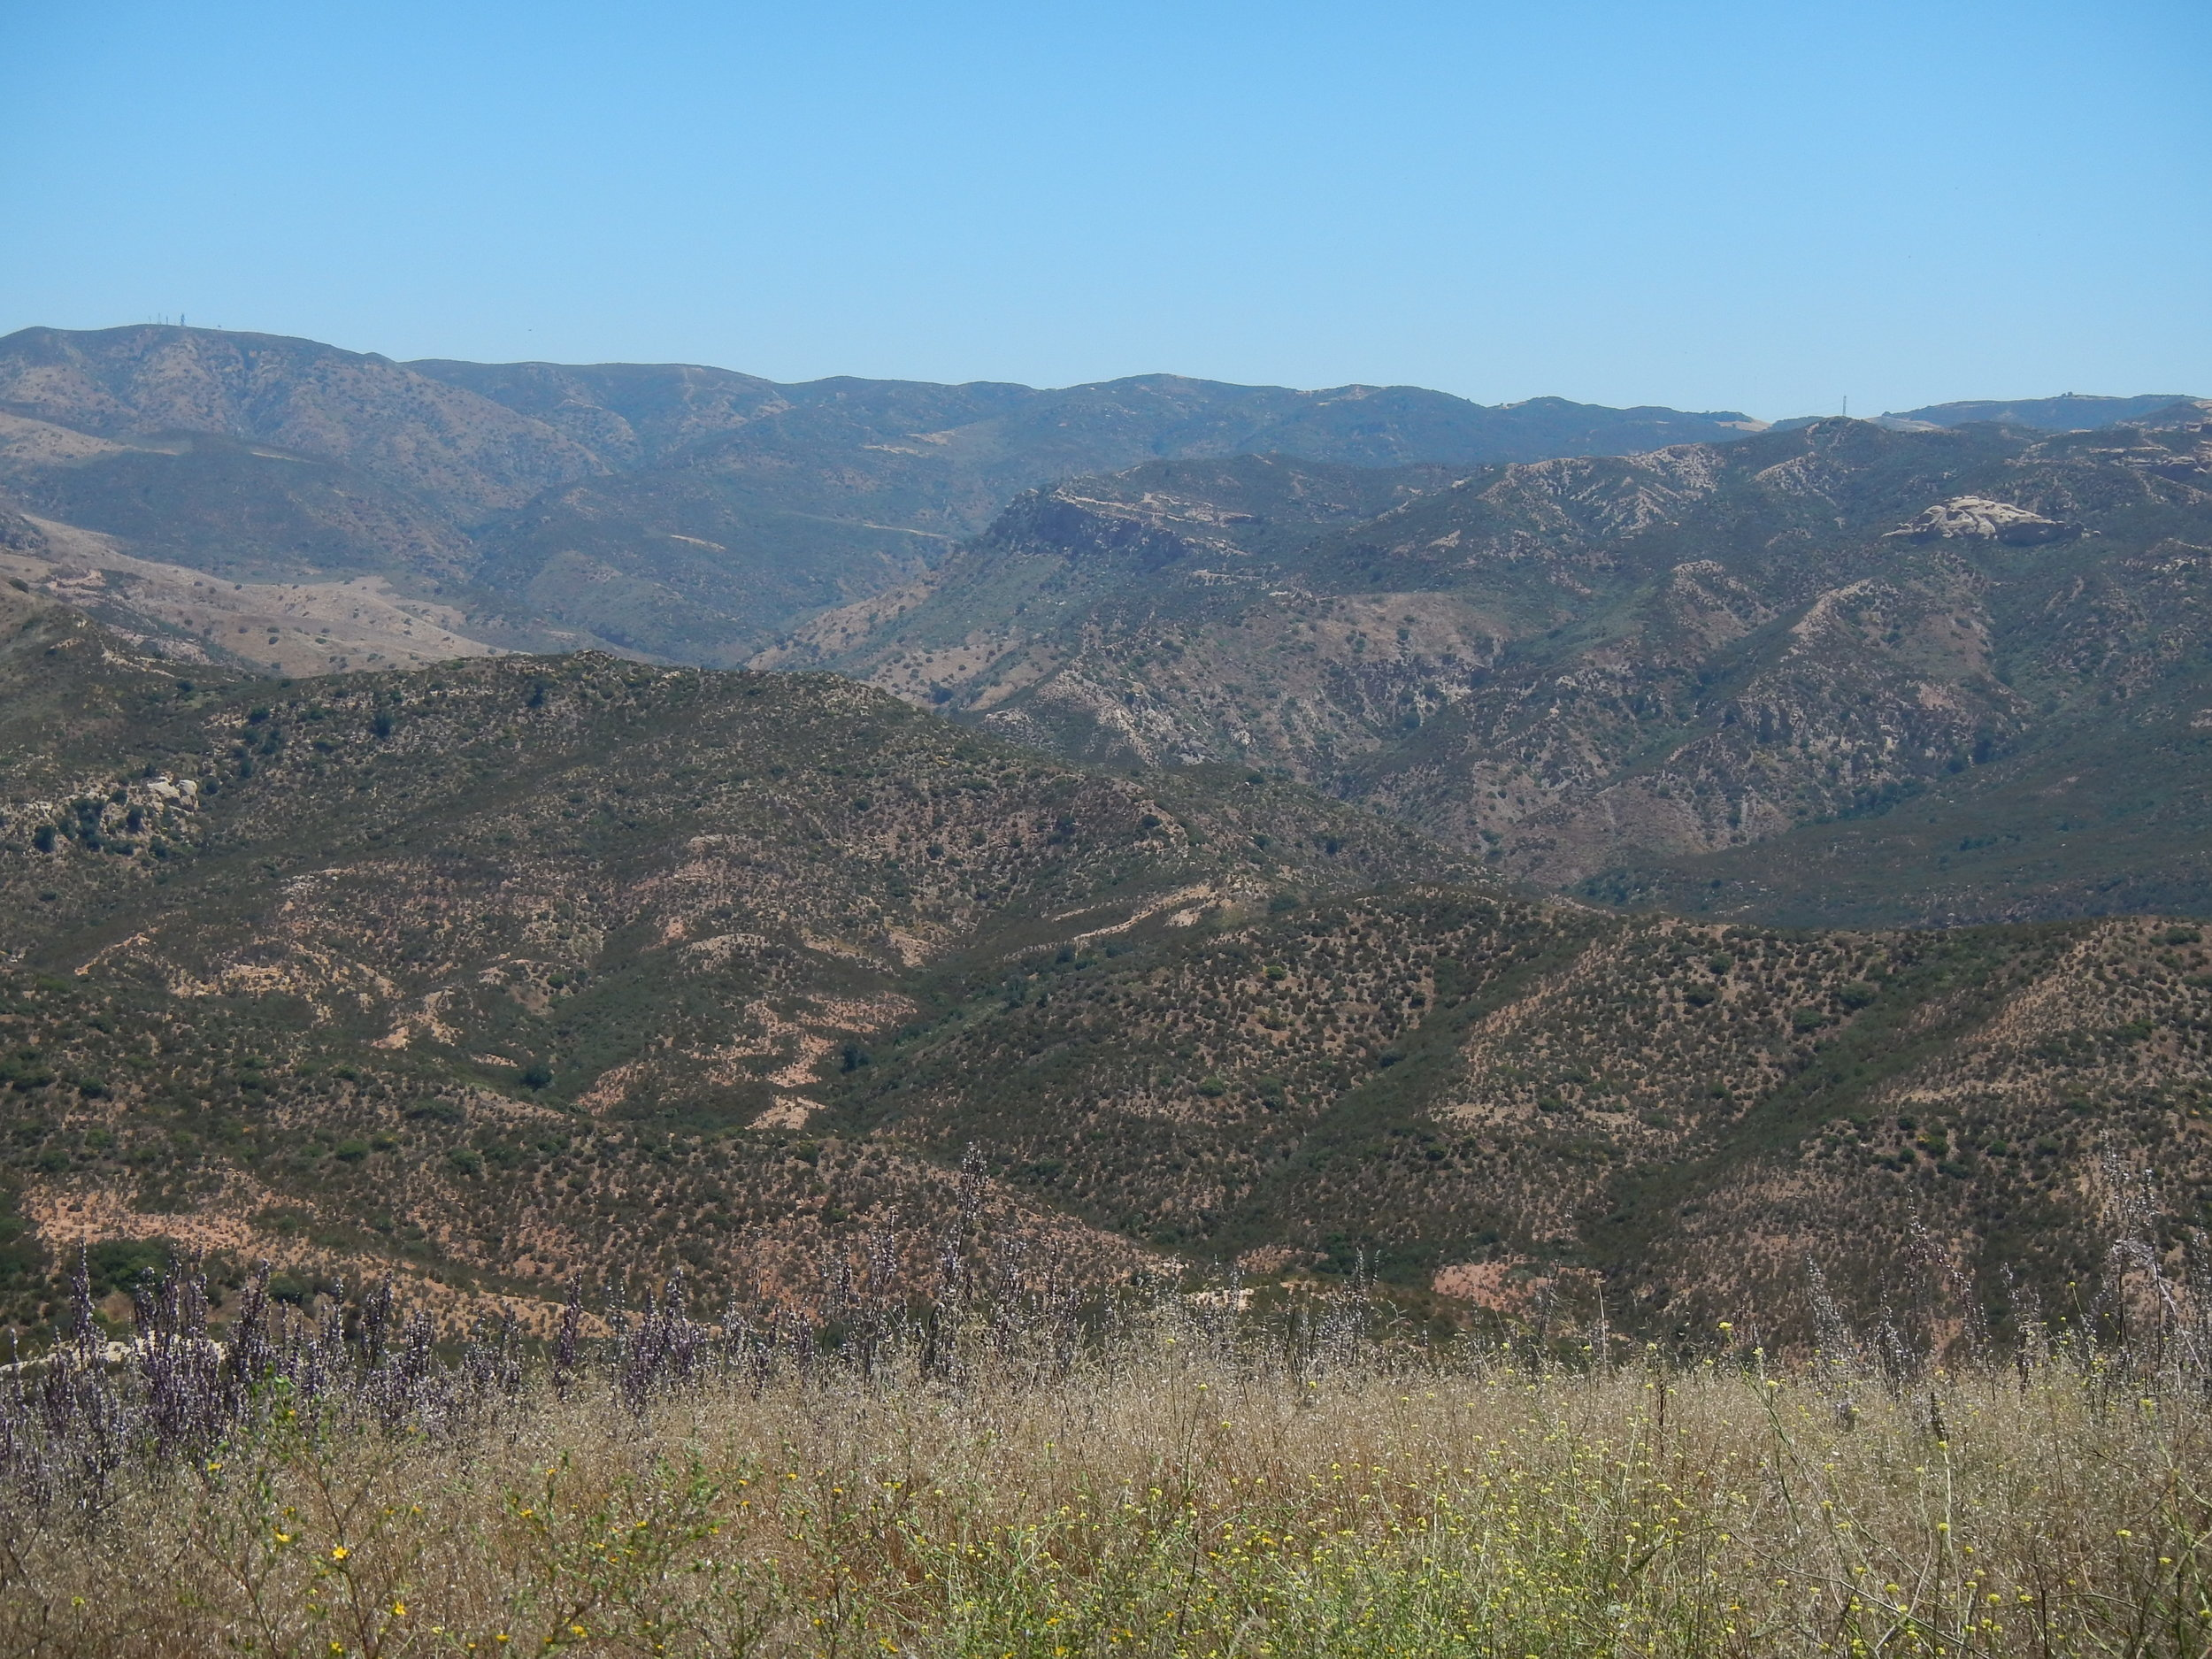 Overlooking Fremont and Black Star canyons (foothills of Santa Ana Mountains)